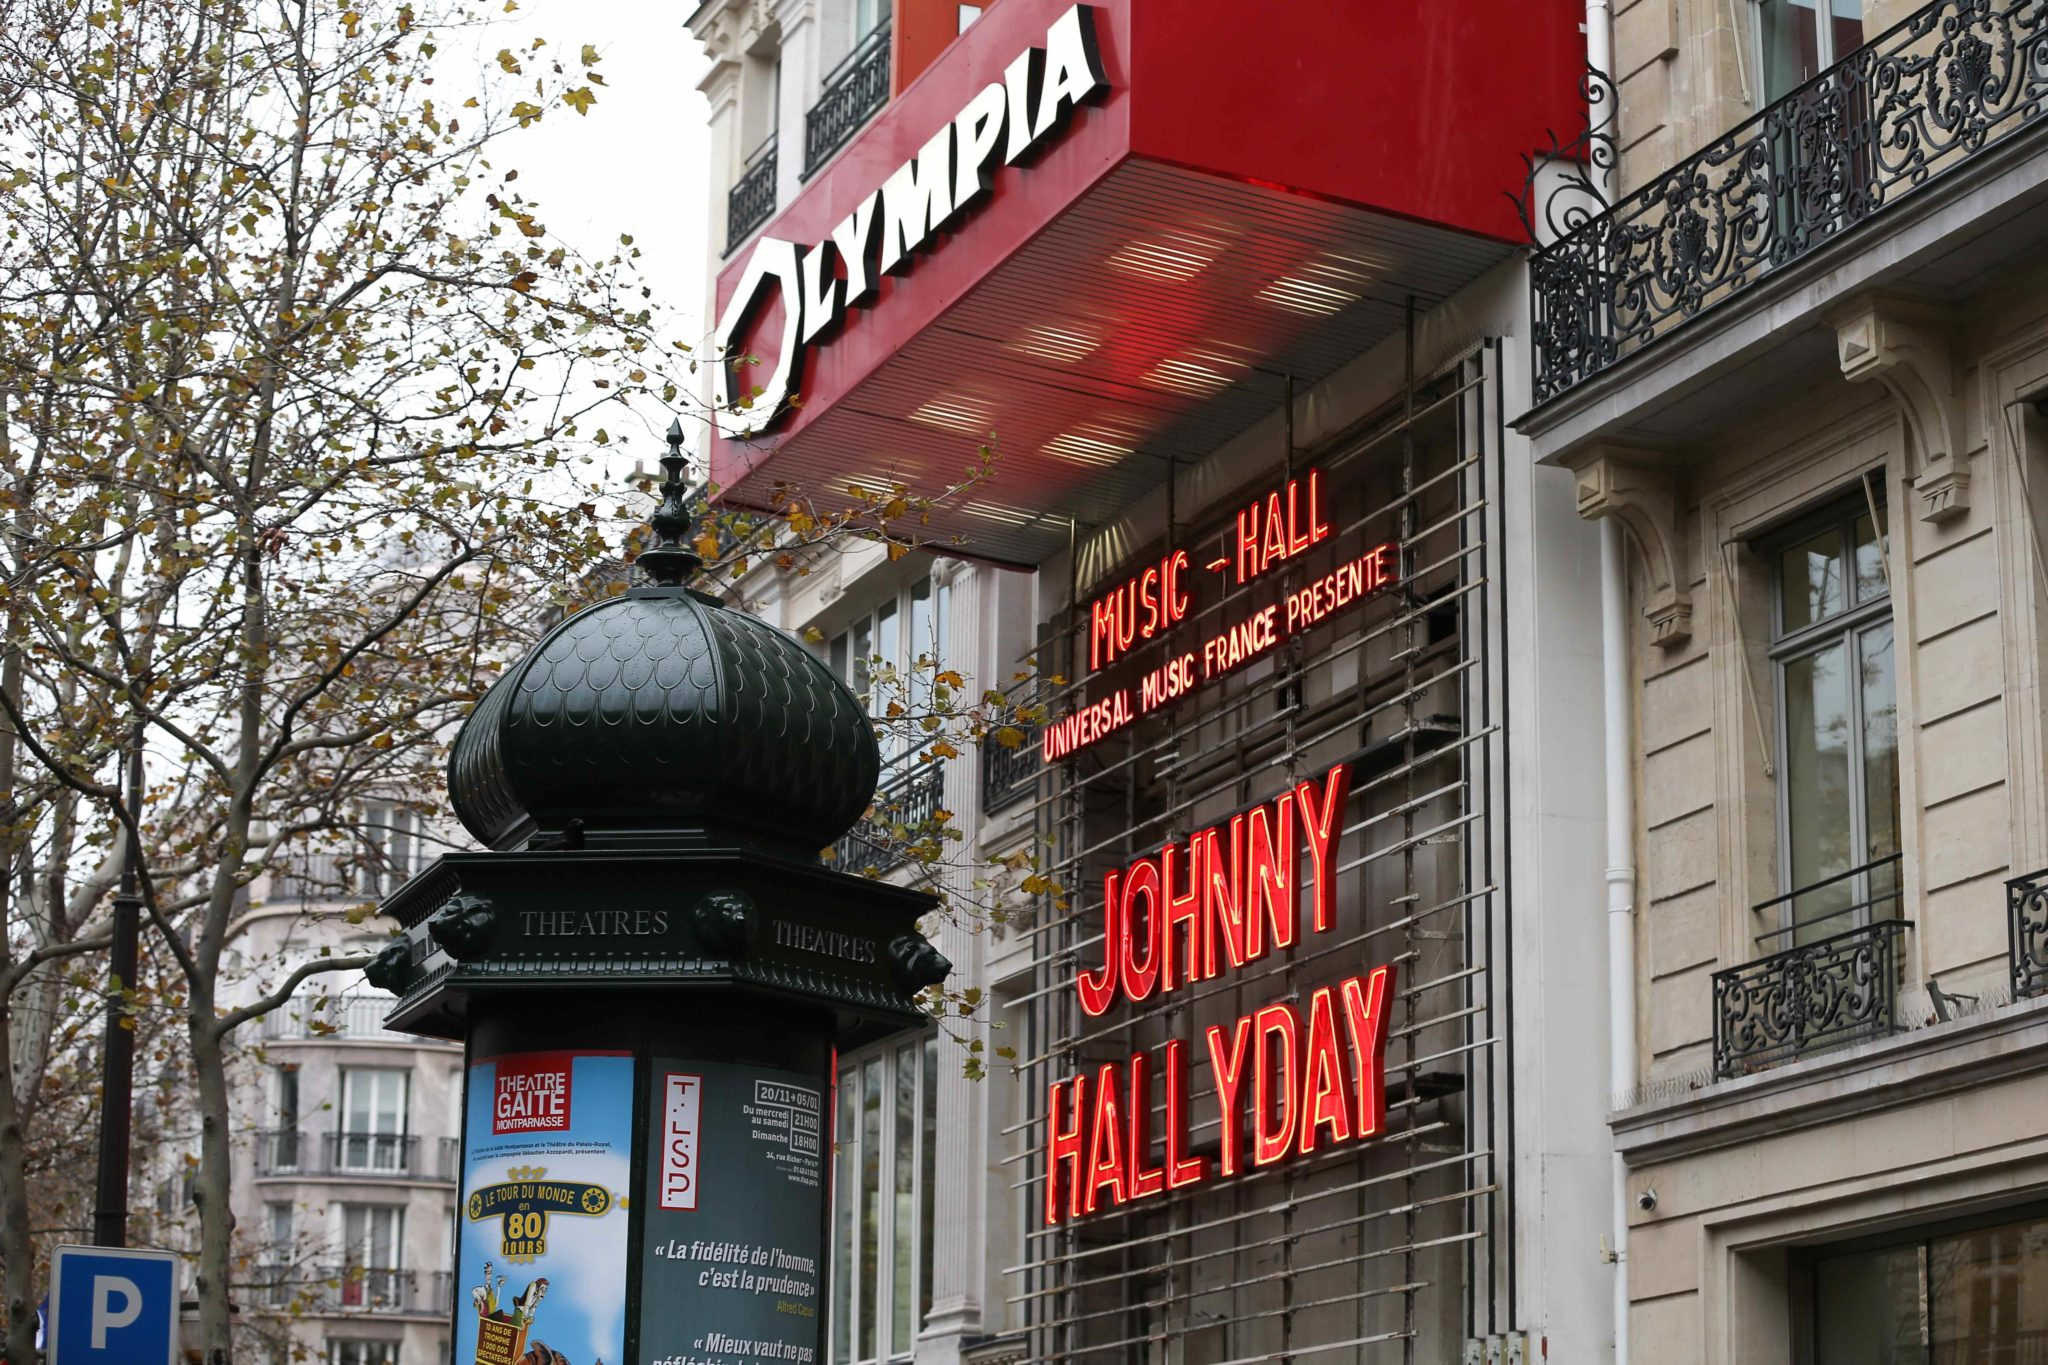 Sunday, December 1, 2019, a tribute was paid to French singer Johnny Hallyday at the Olympia Hall in Paris, almost two years after the death of this legend of French music. For the occasion, the letters of his name shone in red in the neon lights of the fa